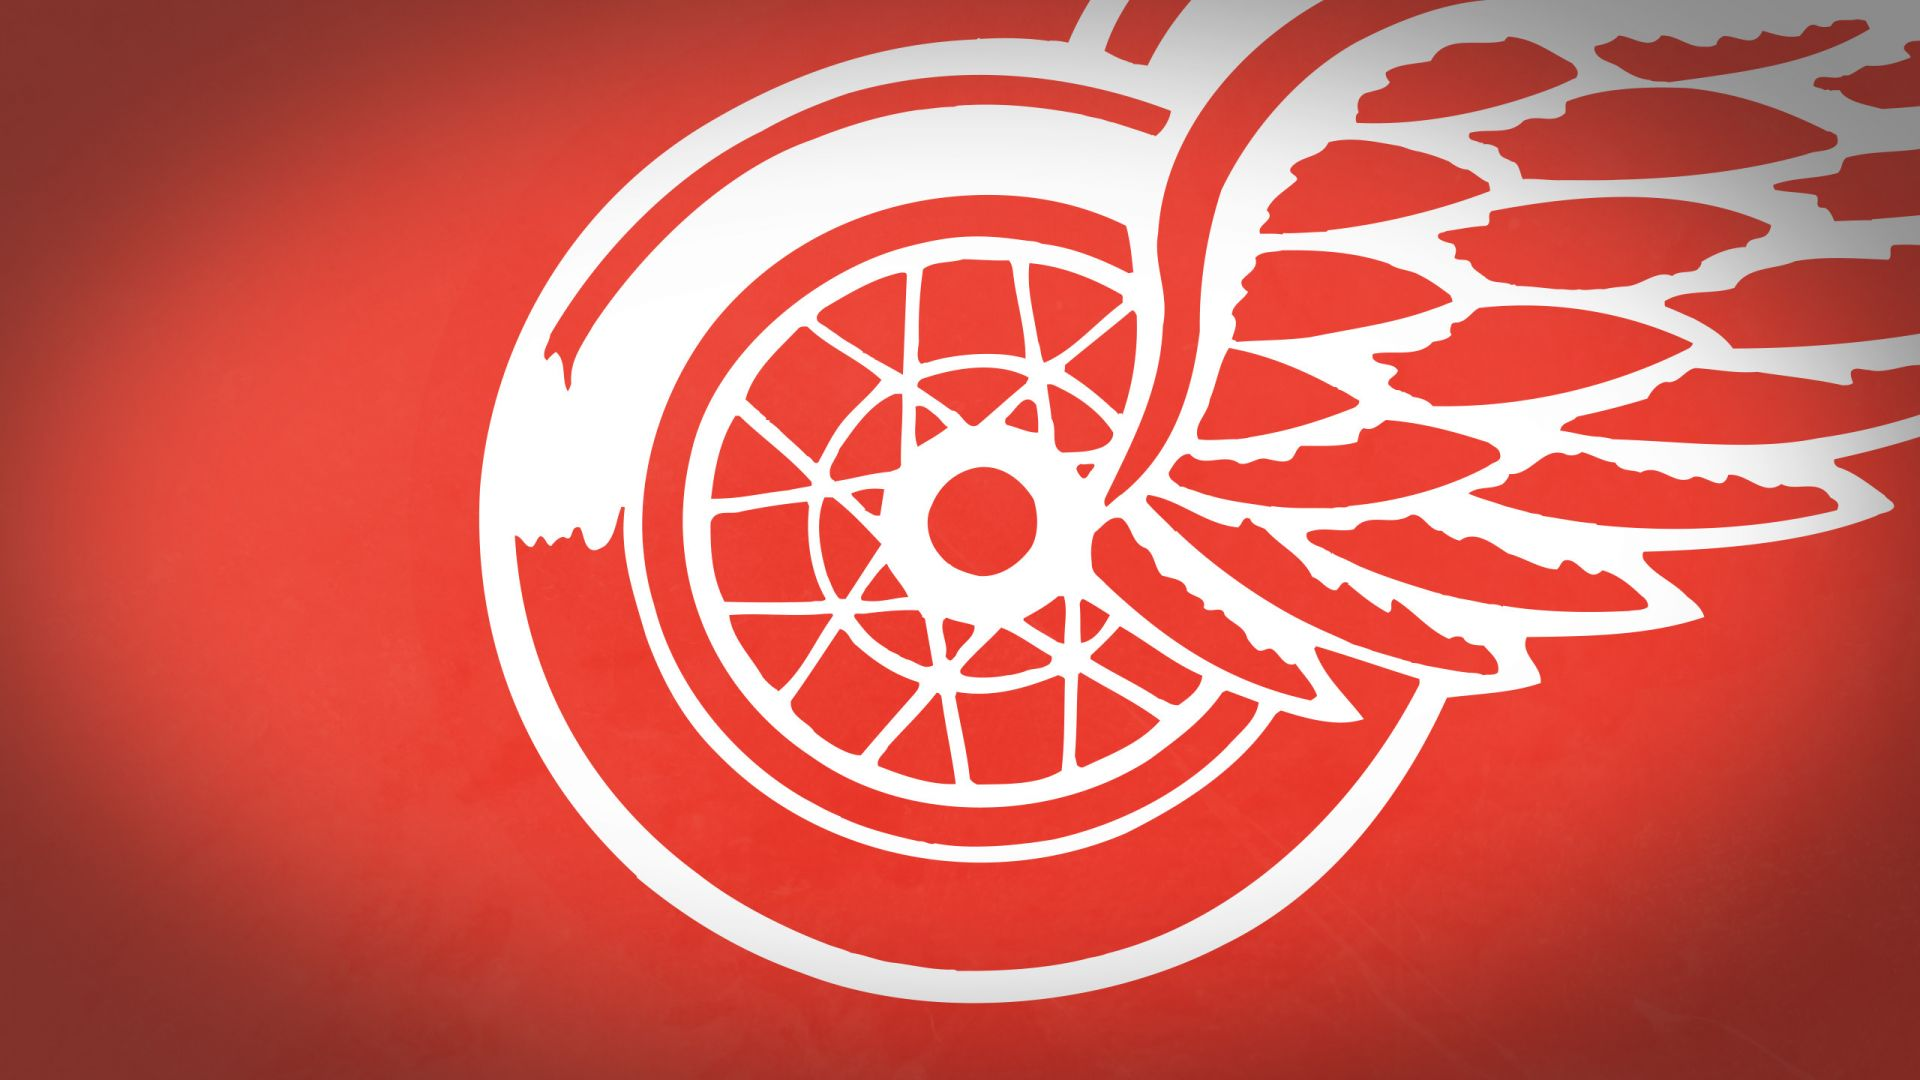 Detroit Red Wings wallpapers Detroit Red Wings background 1920x1080